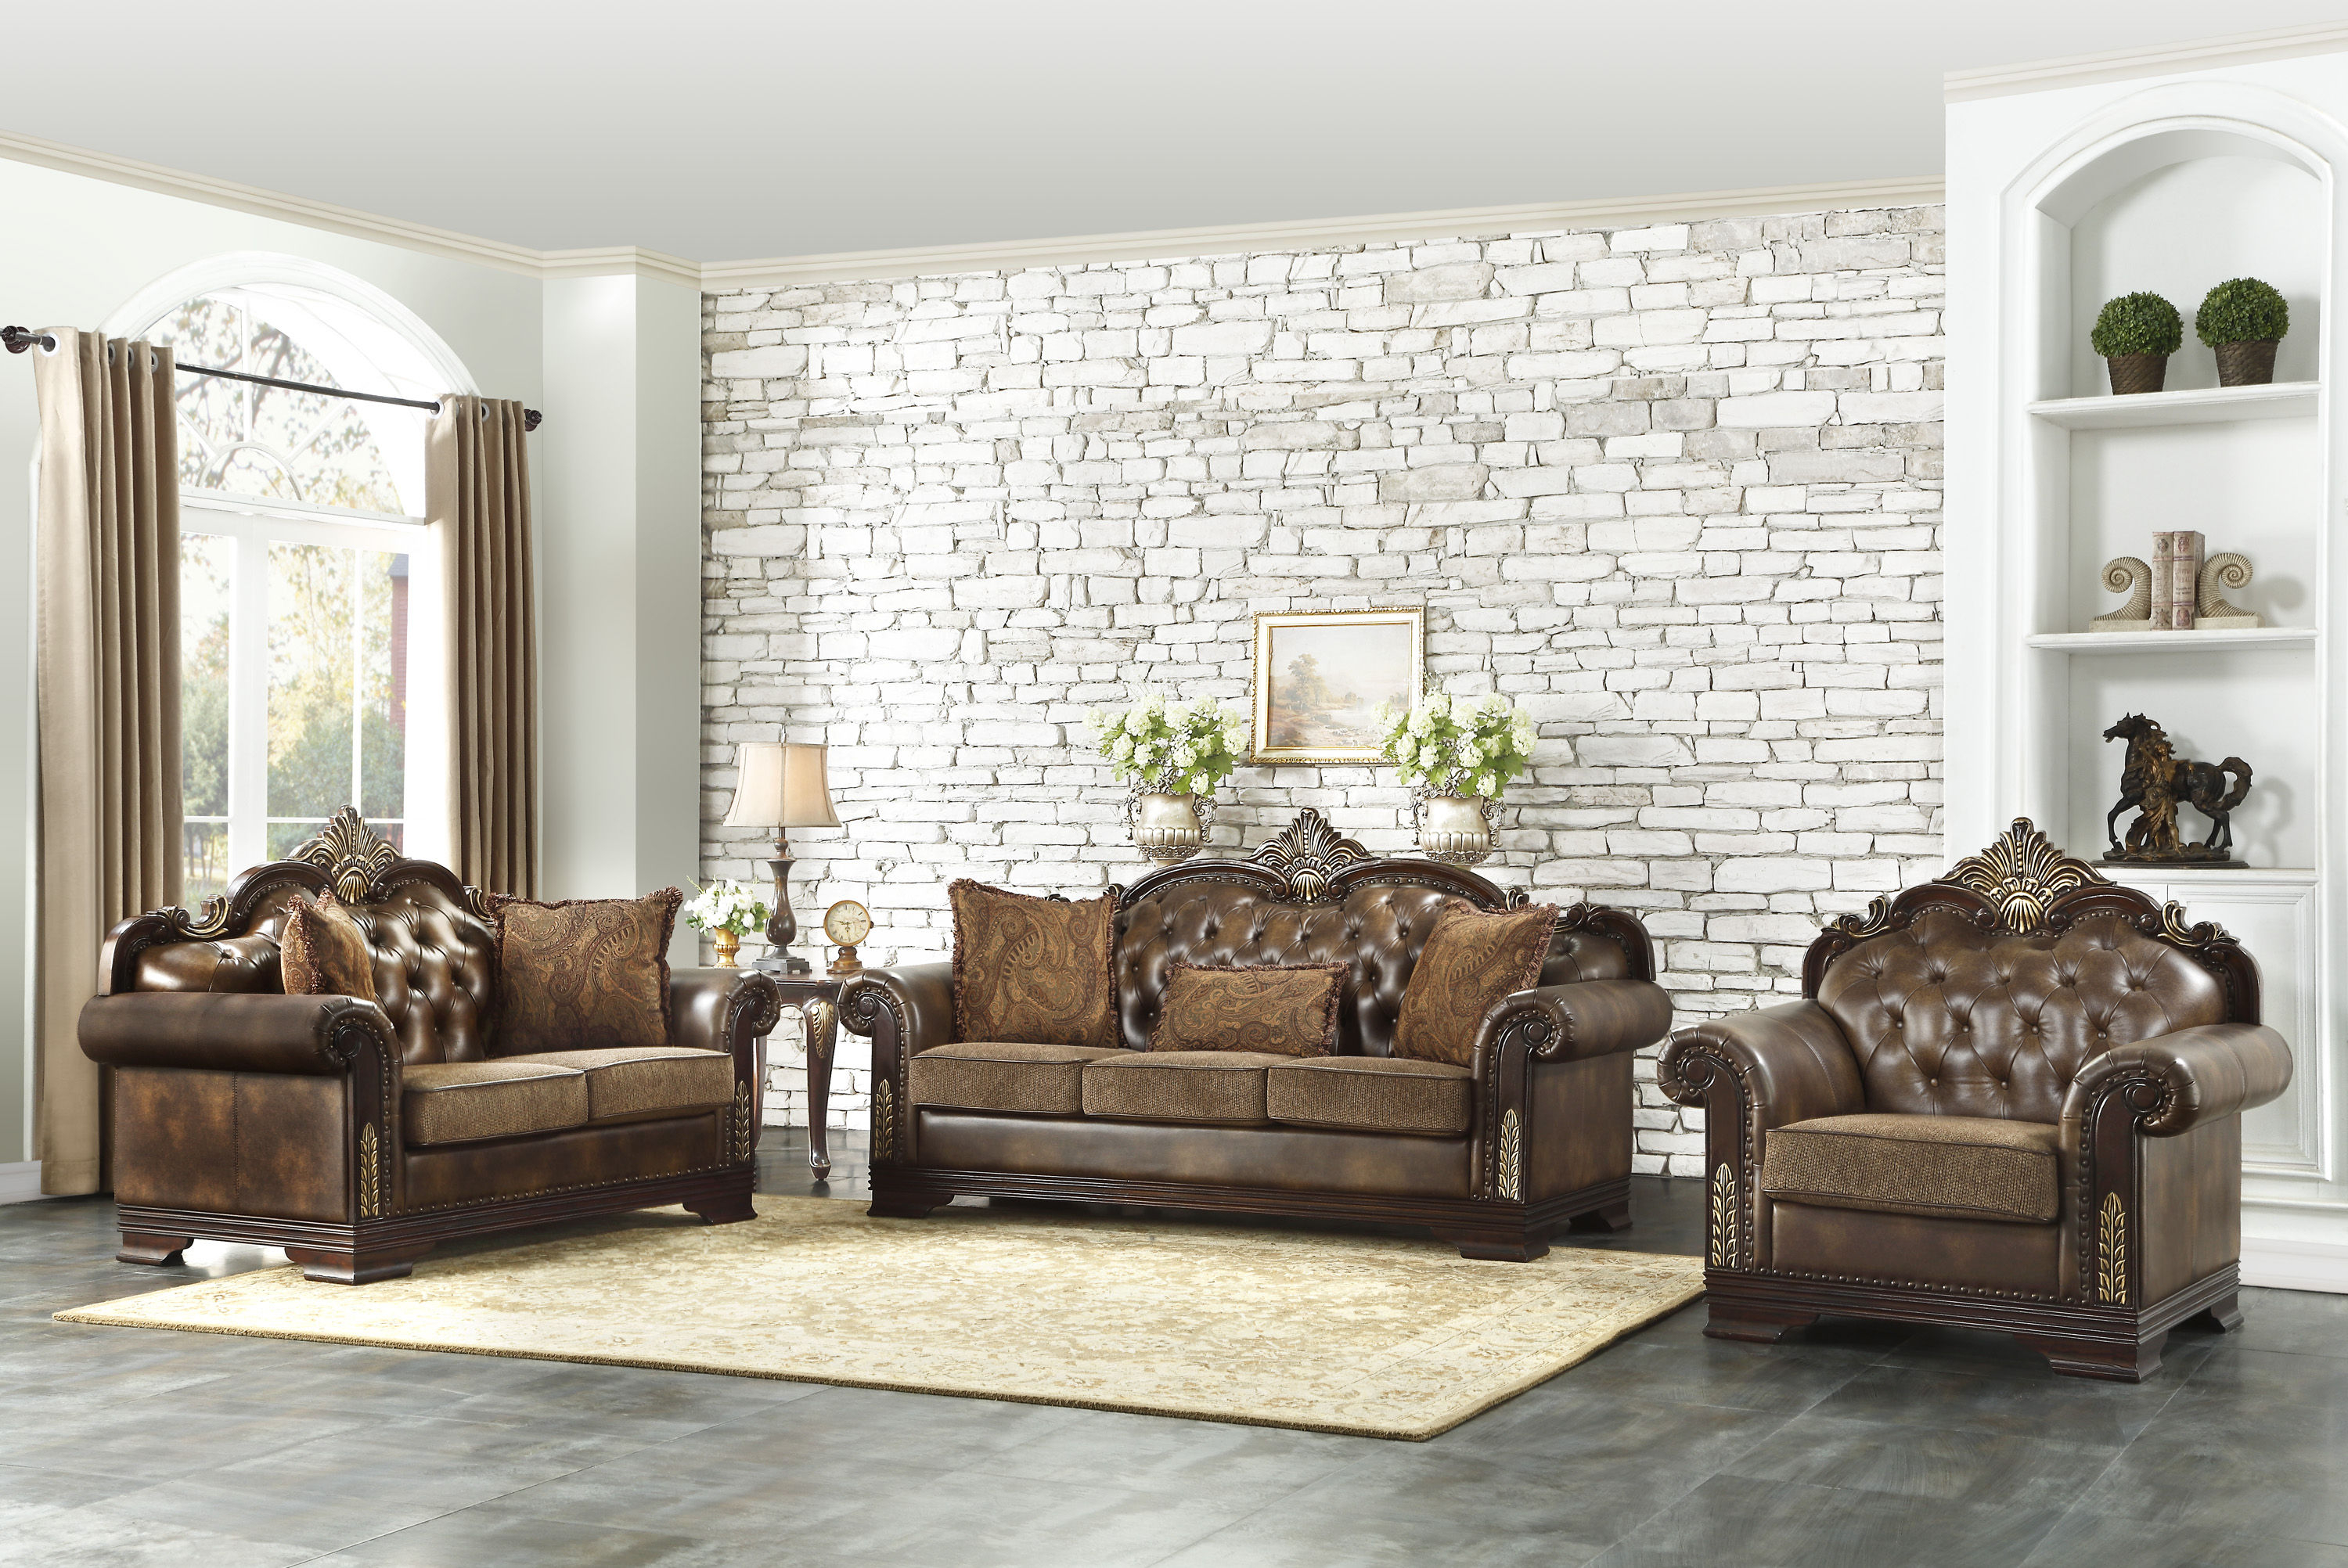 Home Elegance Croydon Rich Cherry Brown 3pc Living Room Set with regard to Cheap Living Room Sets Online